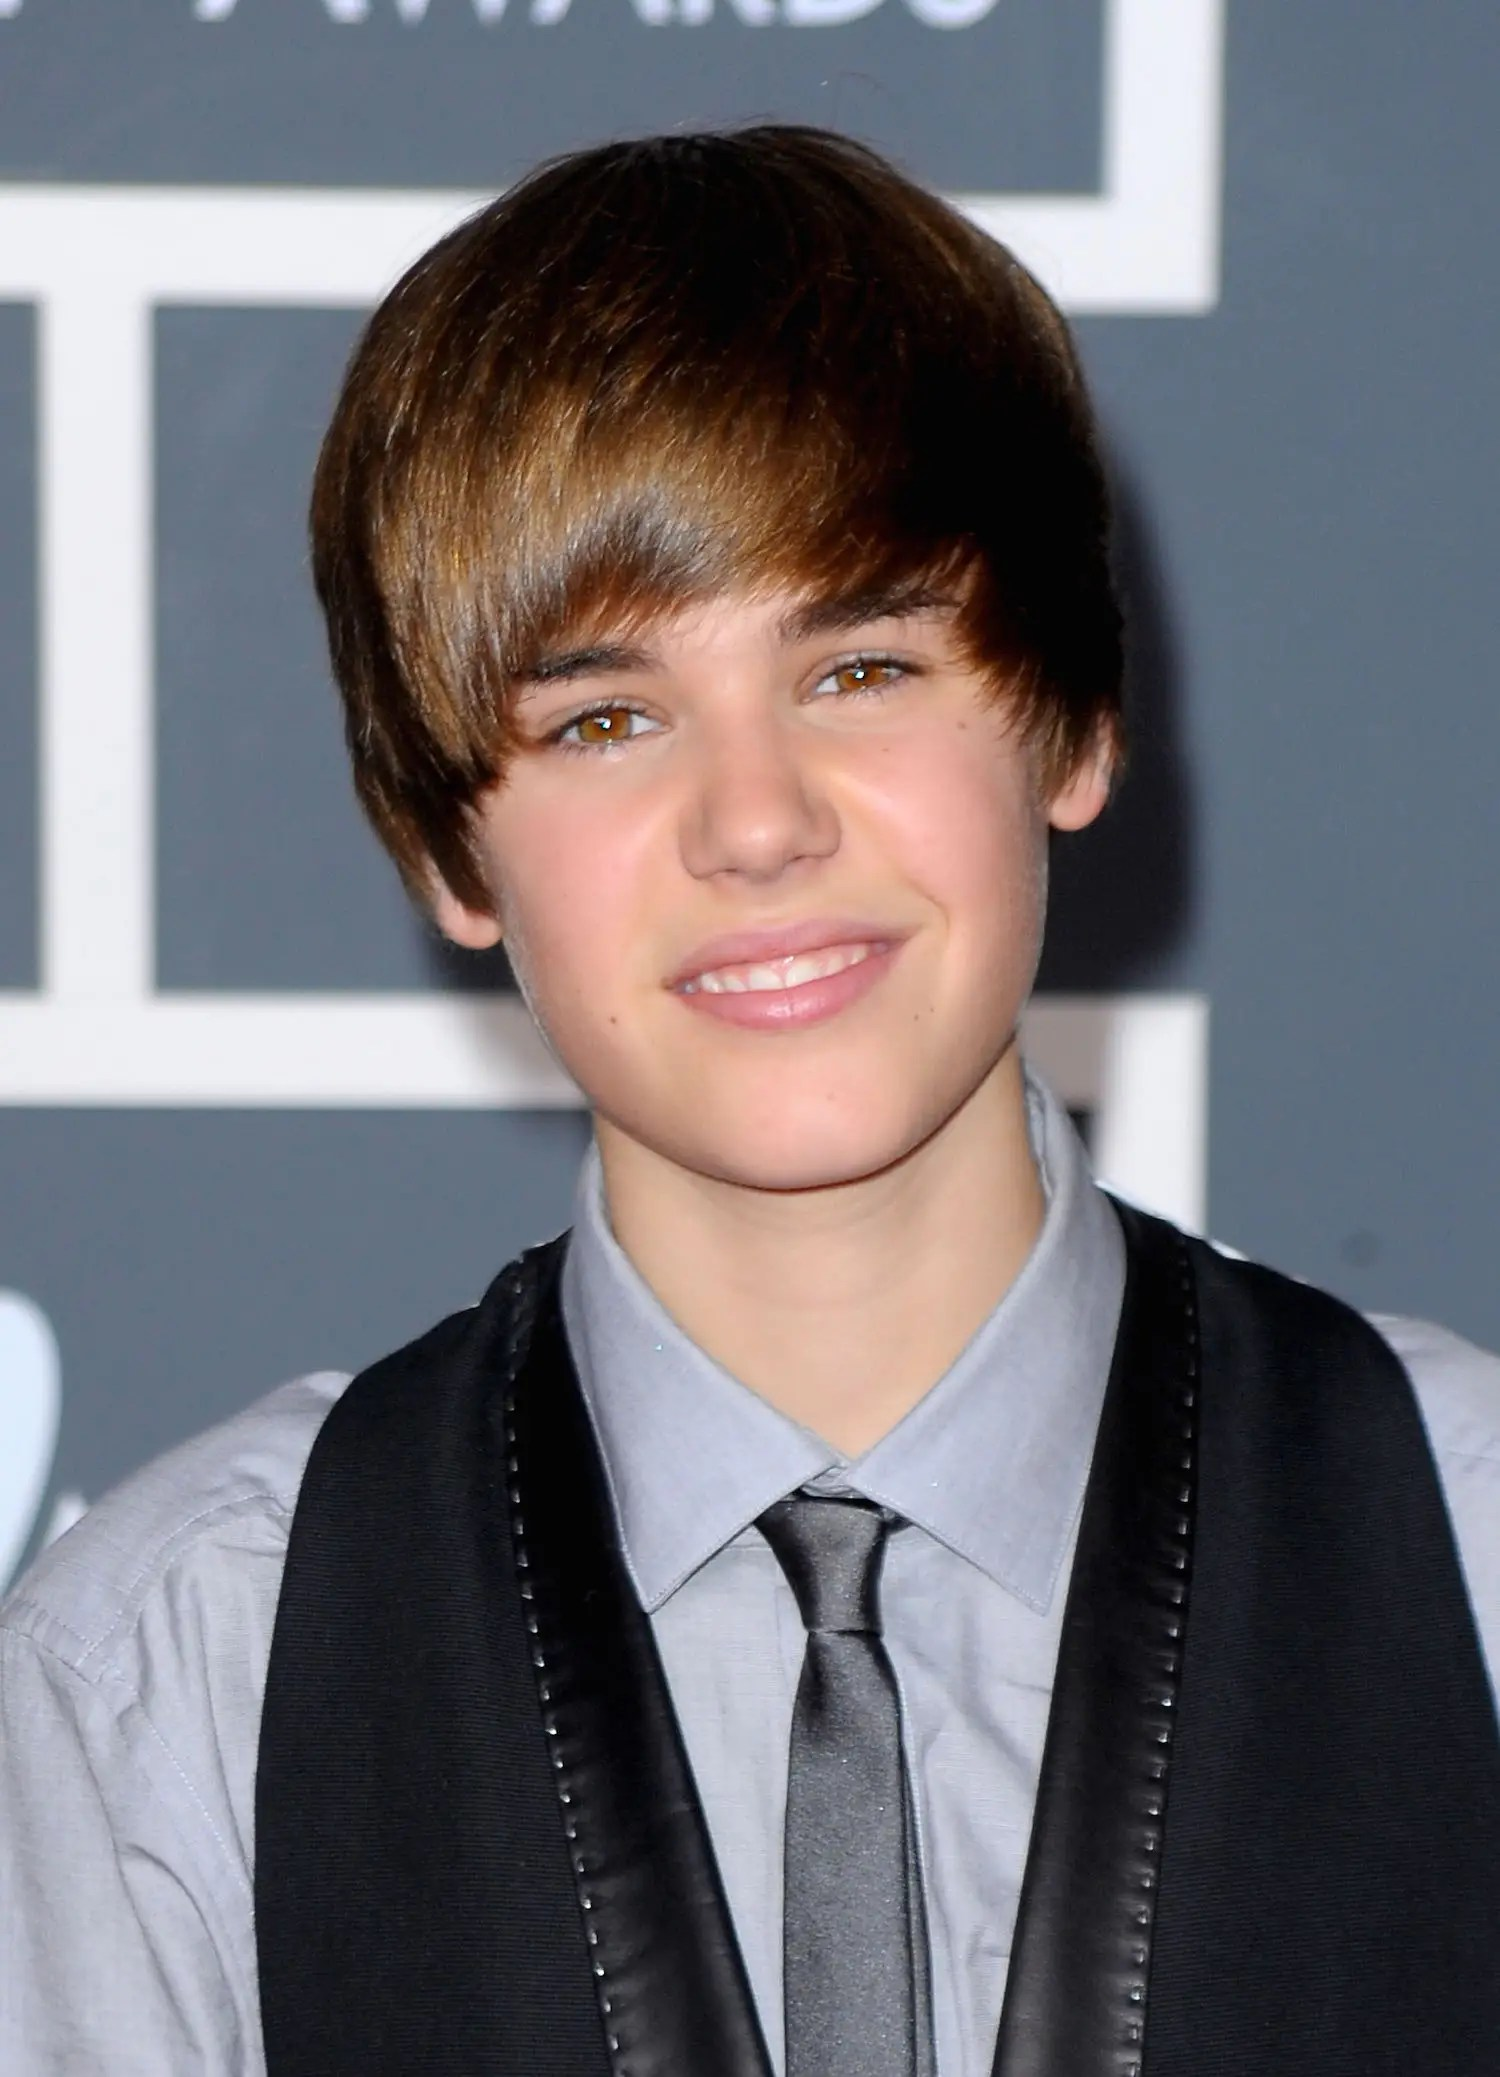 Justin Bieber Old Haircut : justin, bieber, haircut, Justin, Bieber's, Beauty, Hairstyle, Evolution